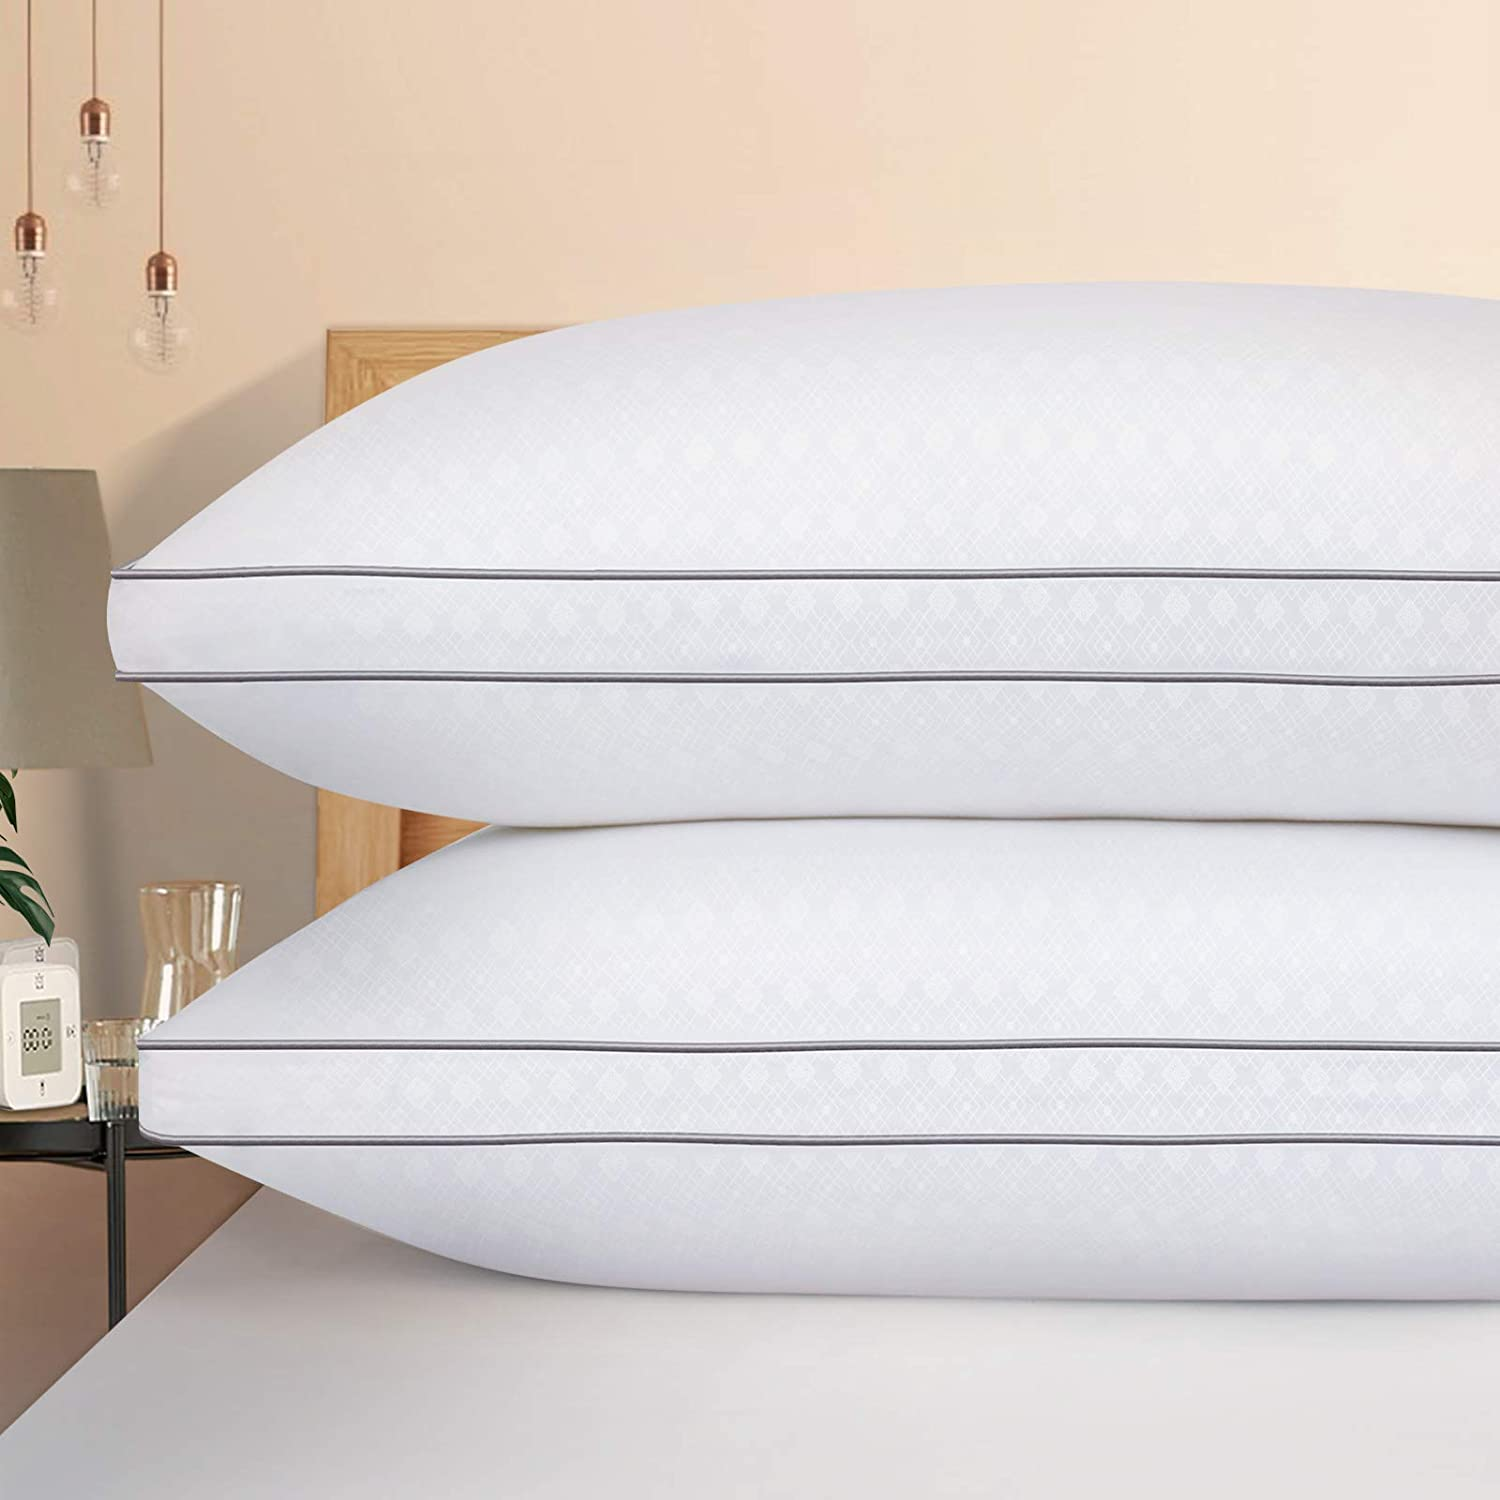 HOTOZON Bed Pillows for Sleeping 2 Pack Plush Fiber Fill Soft and Supportive Gusseted Pillow for Back Side Sleepers Down Alternative Hypoallergenic Pillow Queen Pillow Hotel Quality